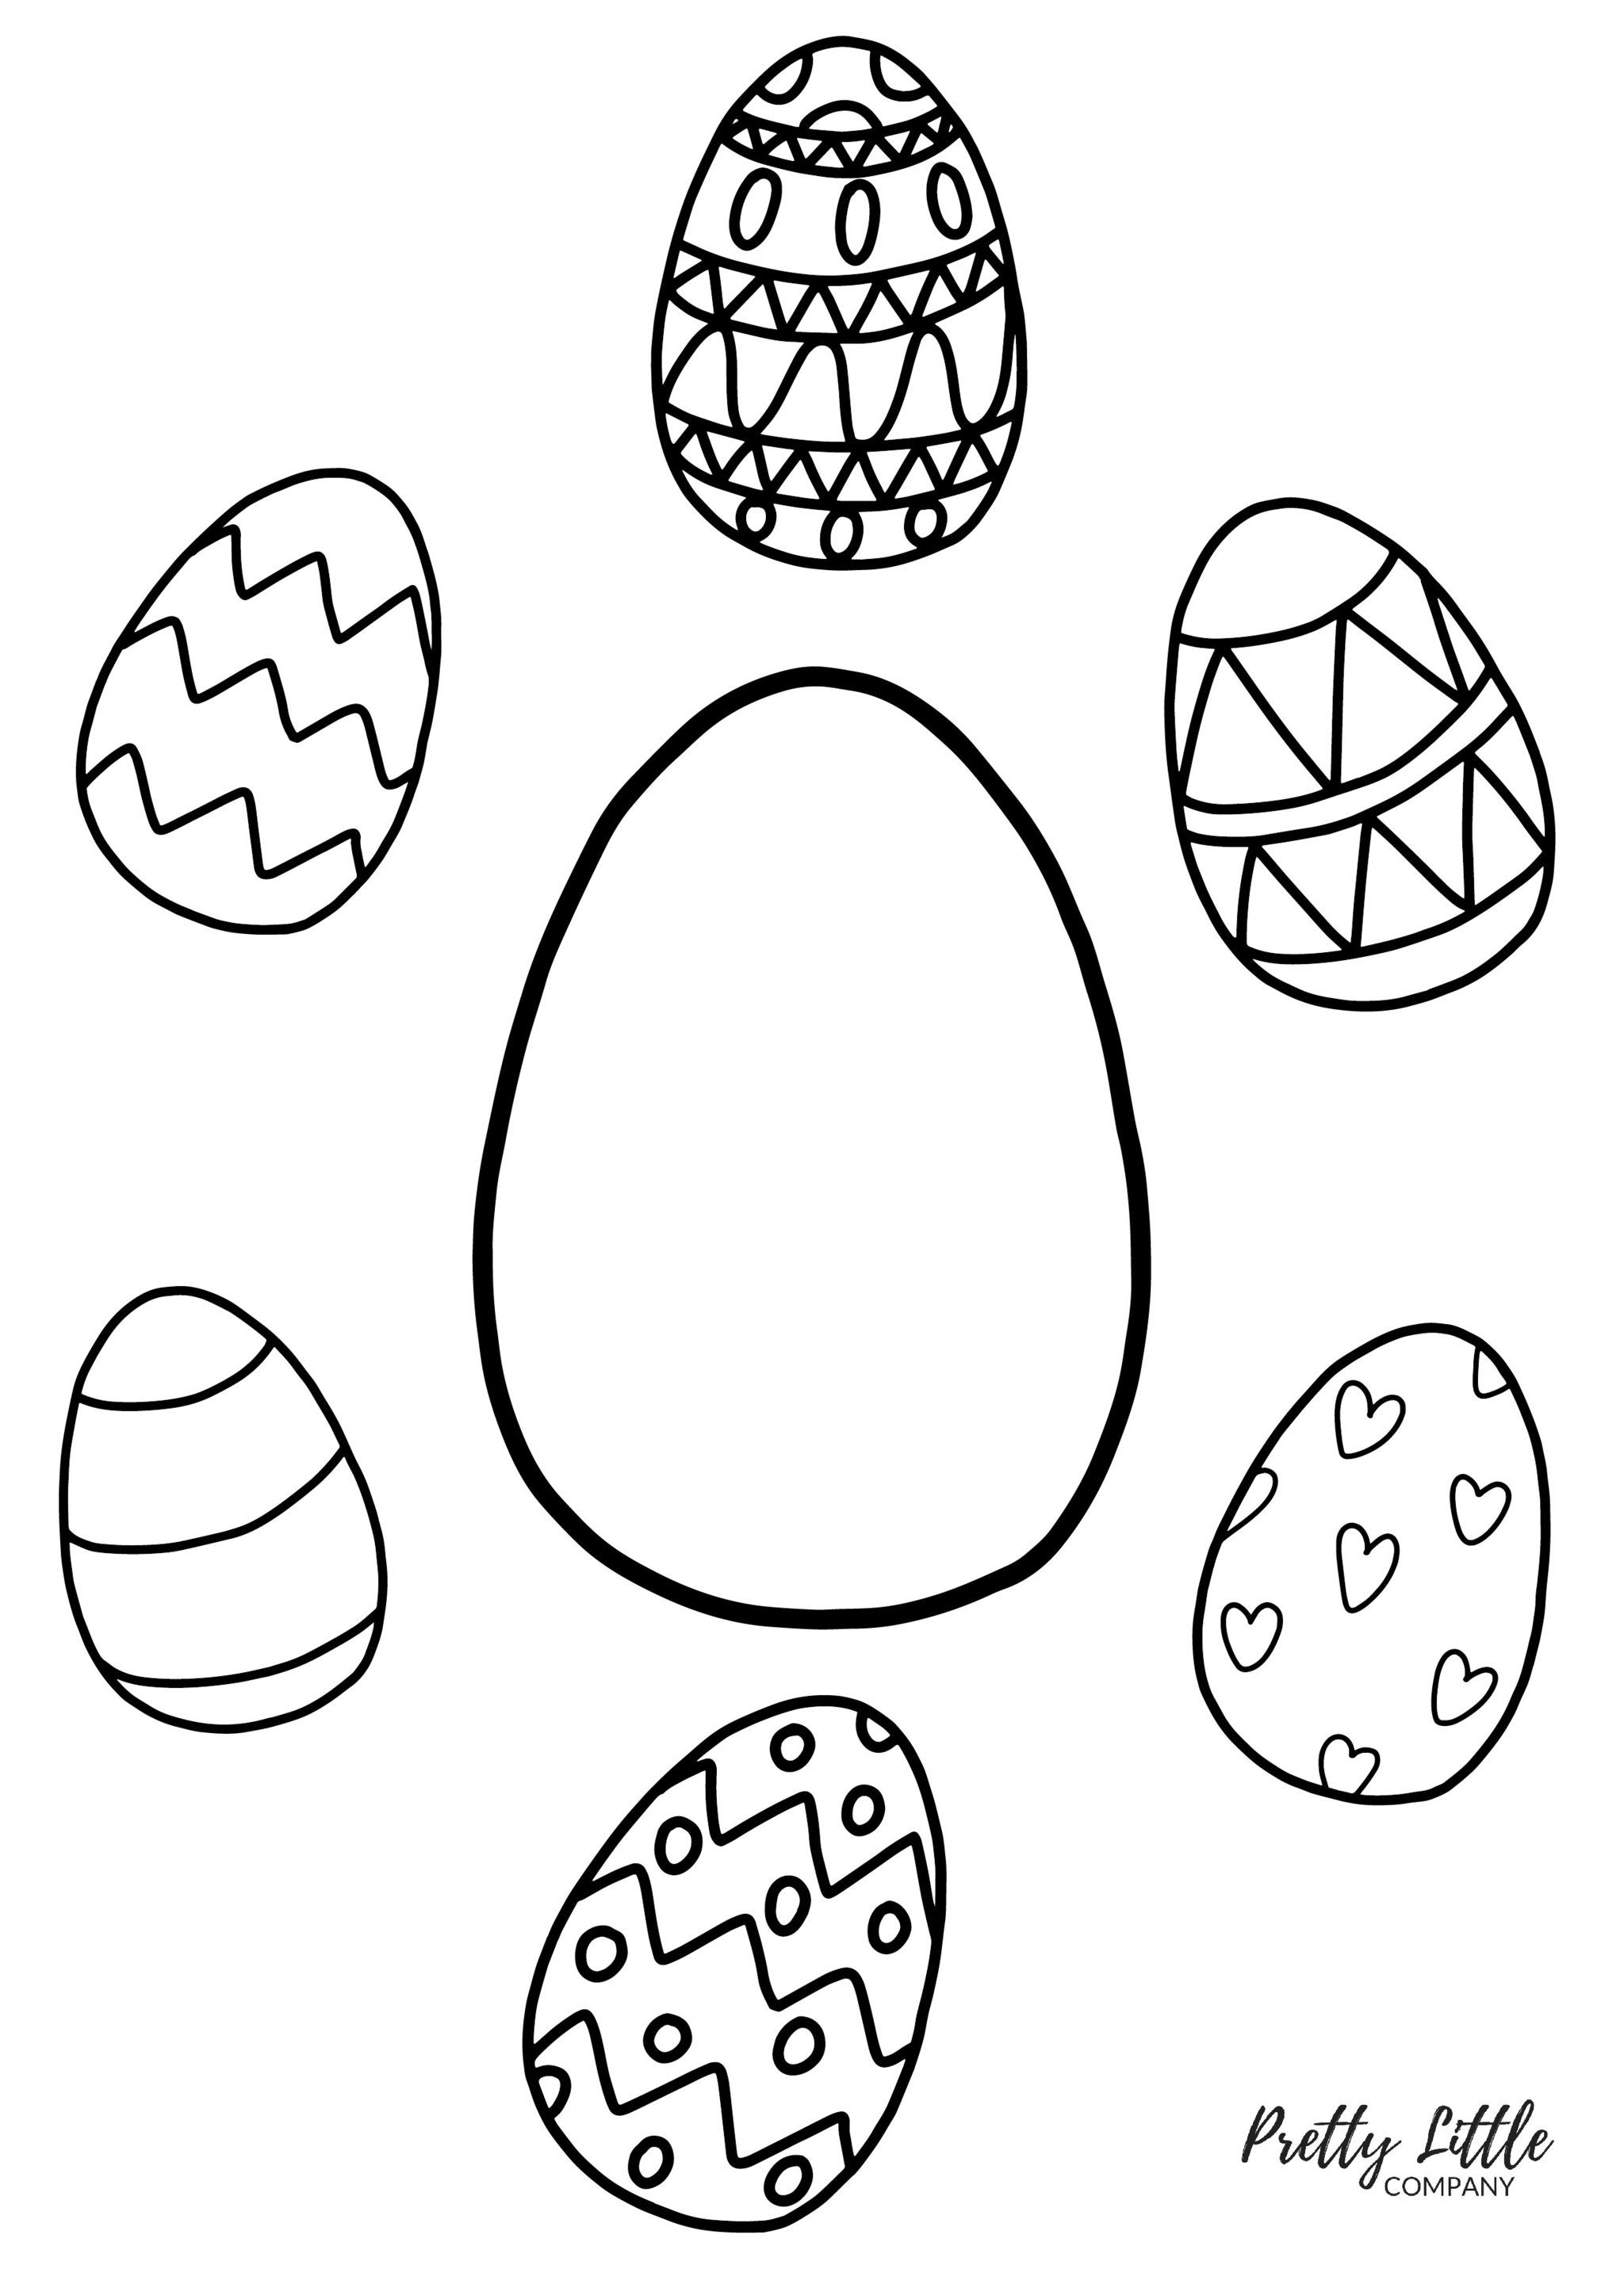 Free Stuff Bunny Coloring Pages Unicorn Coloring Pages Free Coloring Pages